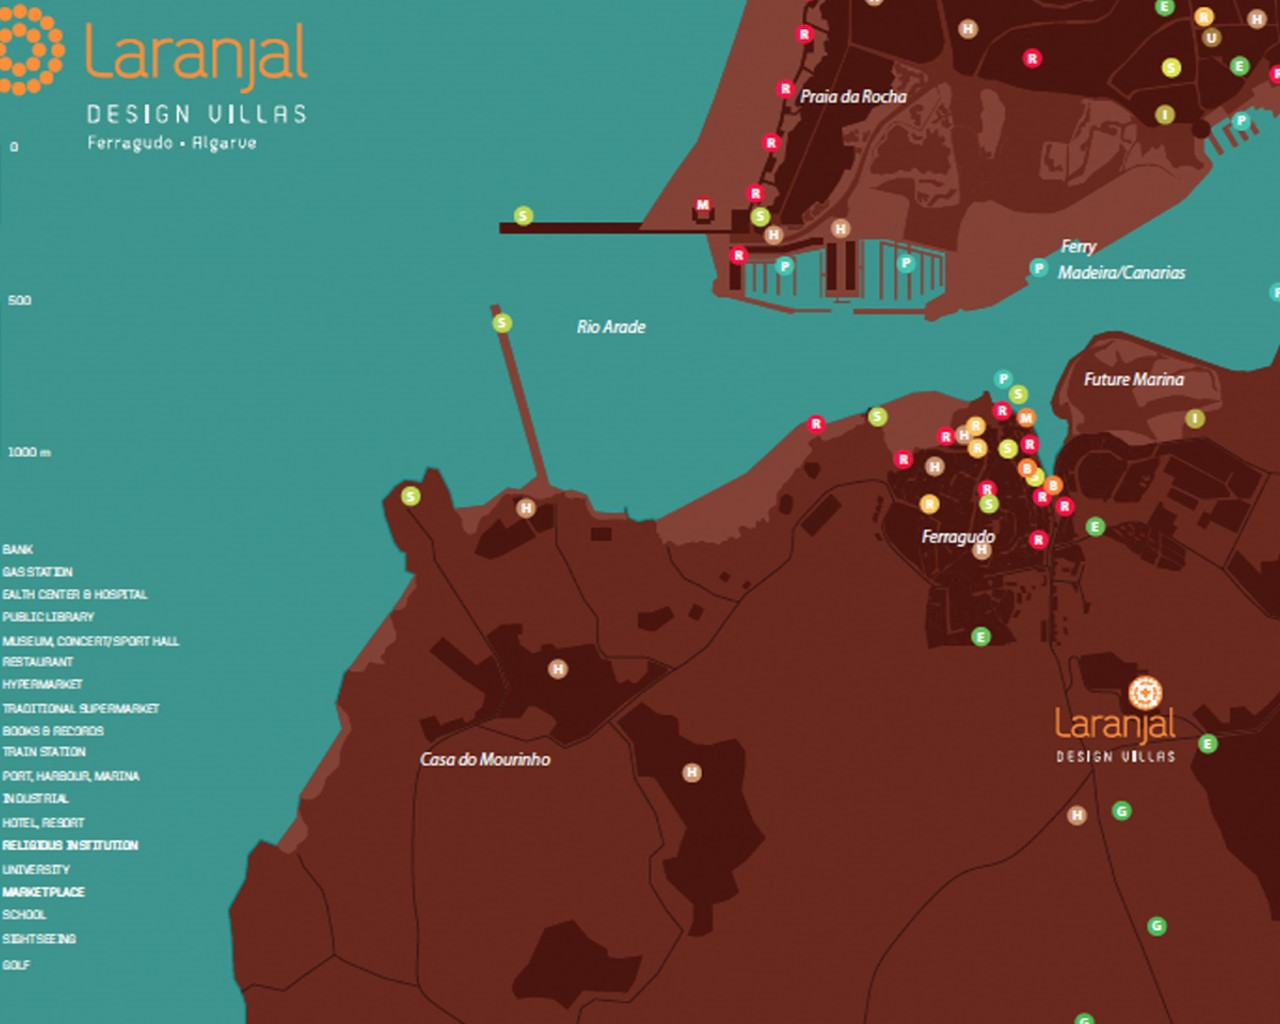 Laranjal Design Villas's Location